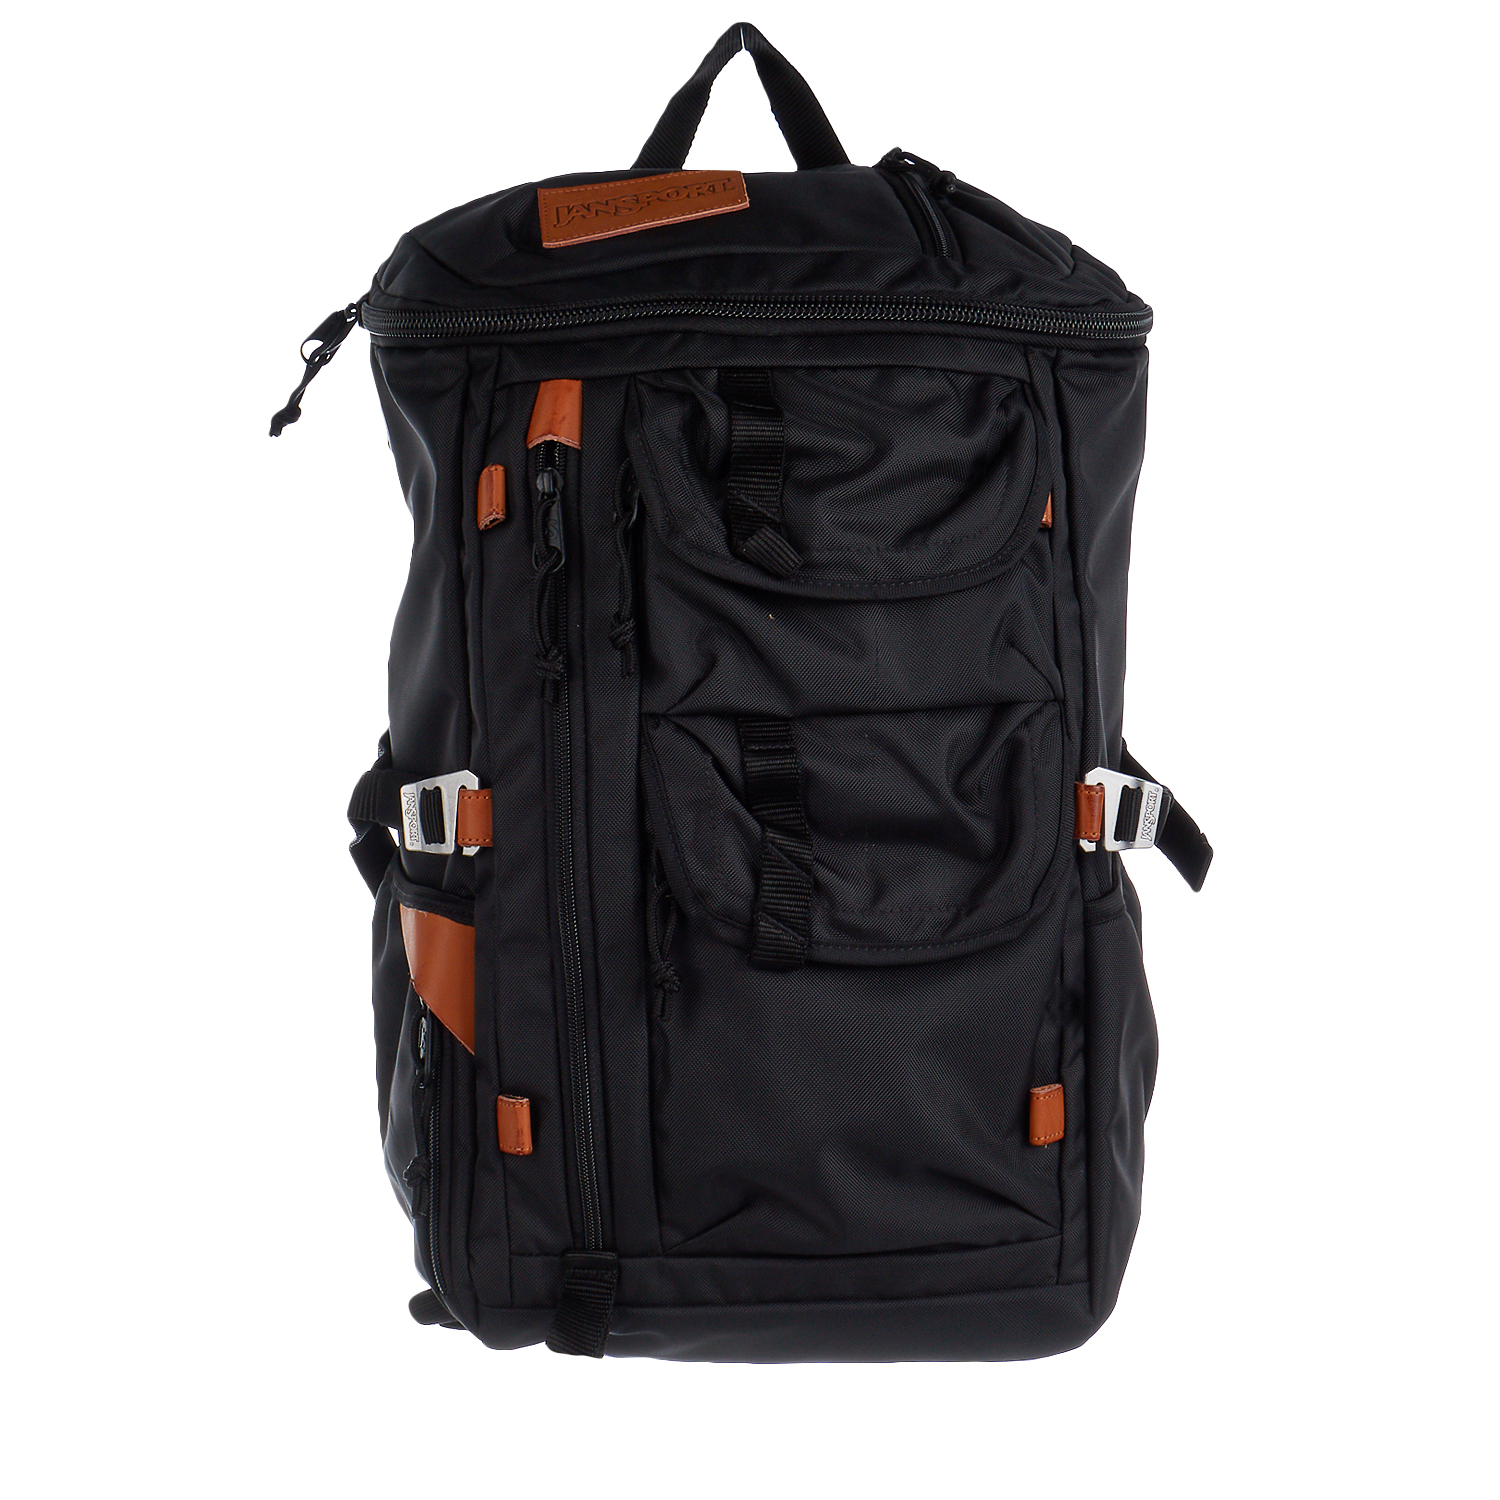 Jansport Watchtower Hiking Backpack